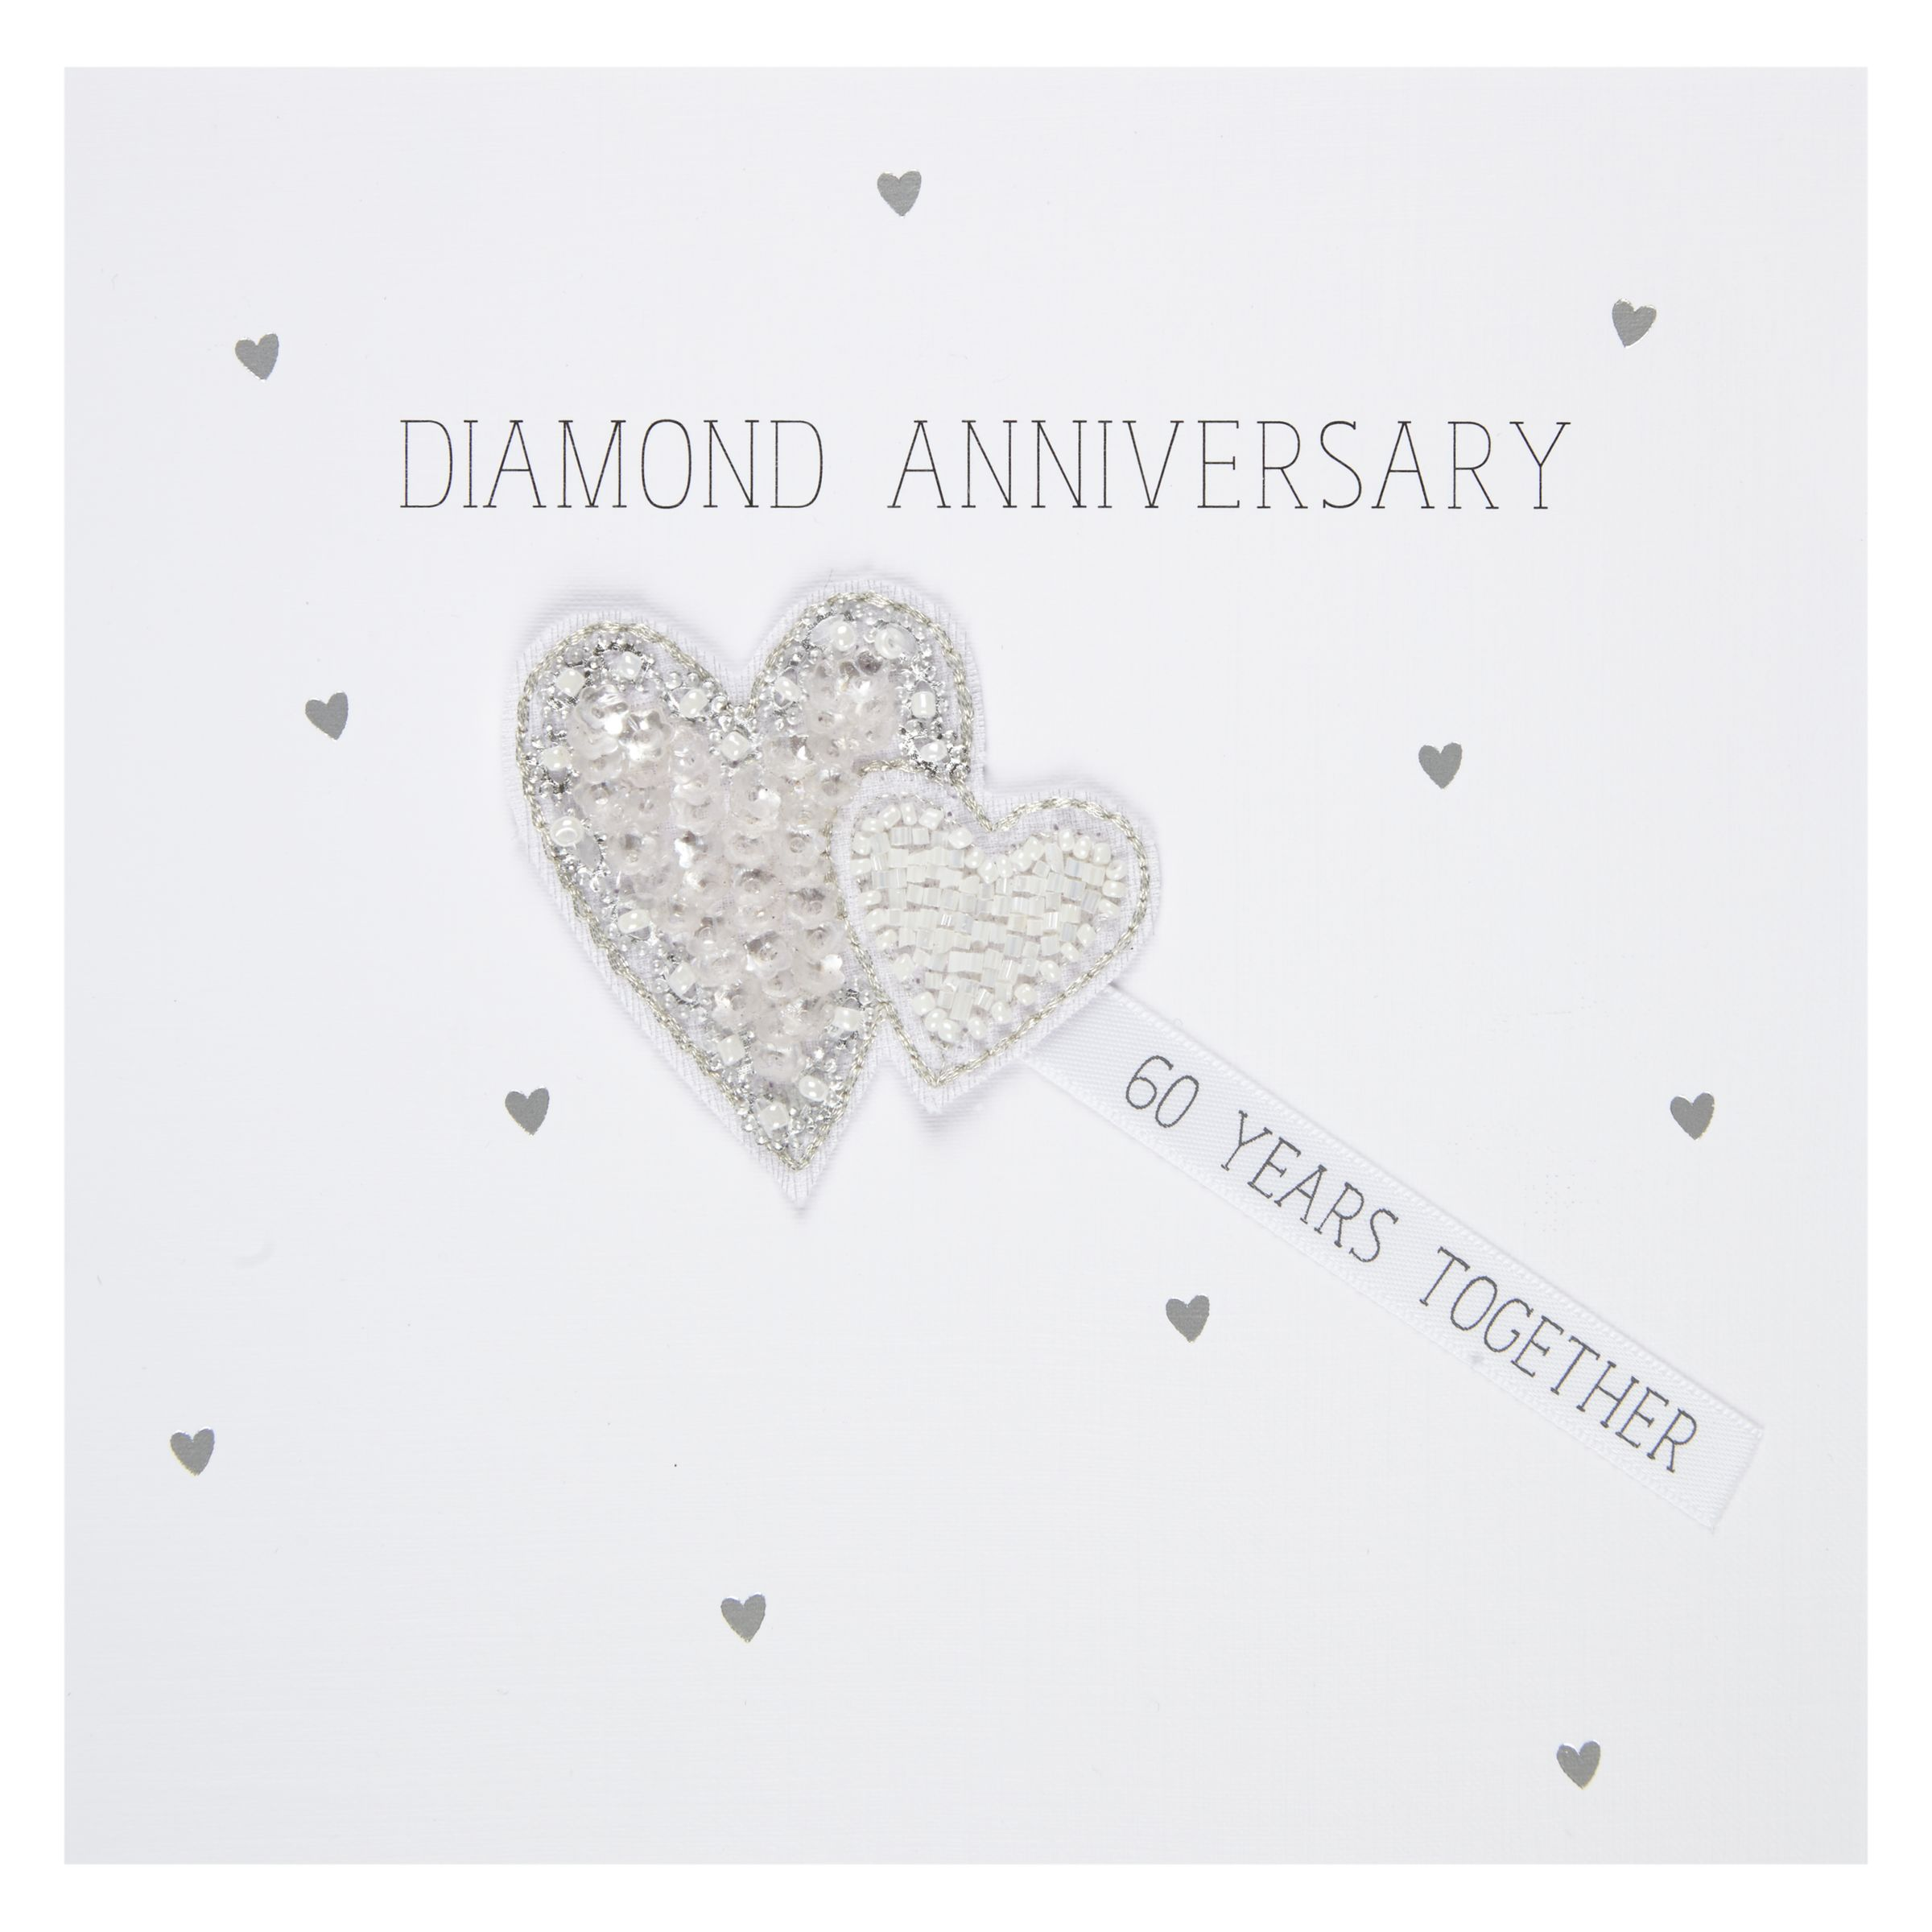 Wedding Anniversary Gift Delivery Singapore : Buy Saffron Cards and Gifts Diamond Wedding Anniversary Card Online at ...